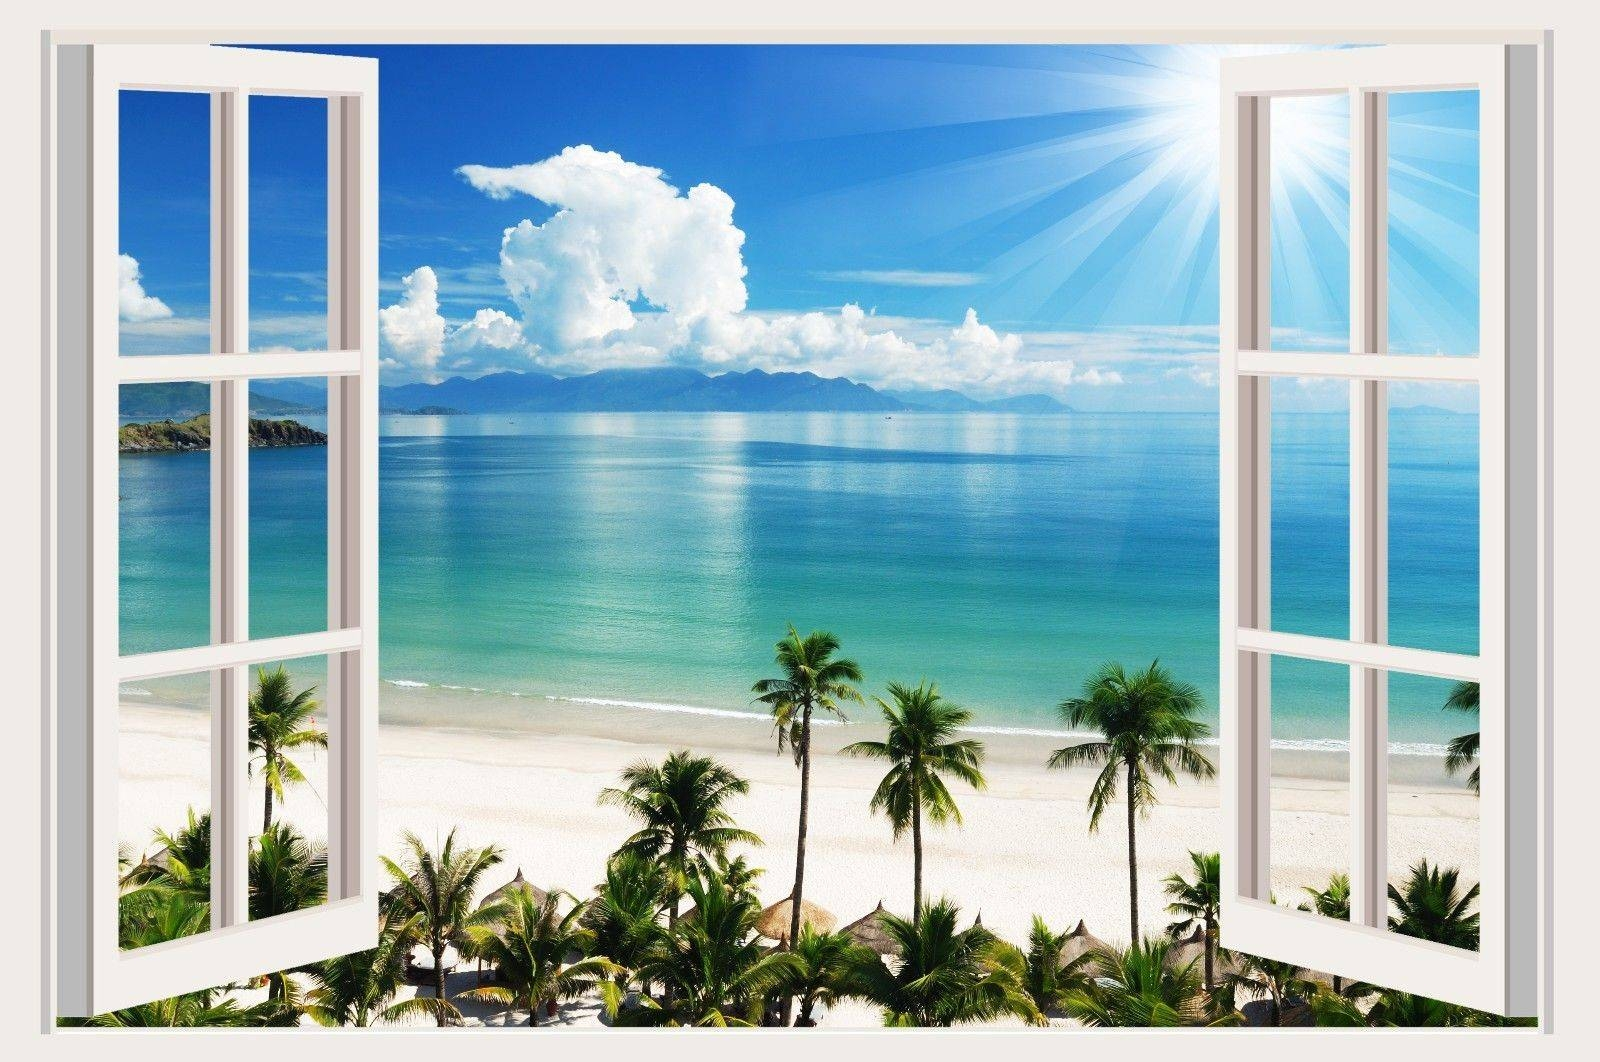 Small Wall Stickers Tropical Sea Beach Trees Decals 3d Window Pertaining To Current Vinyl 3d Wall Art (View 12 of 20)